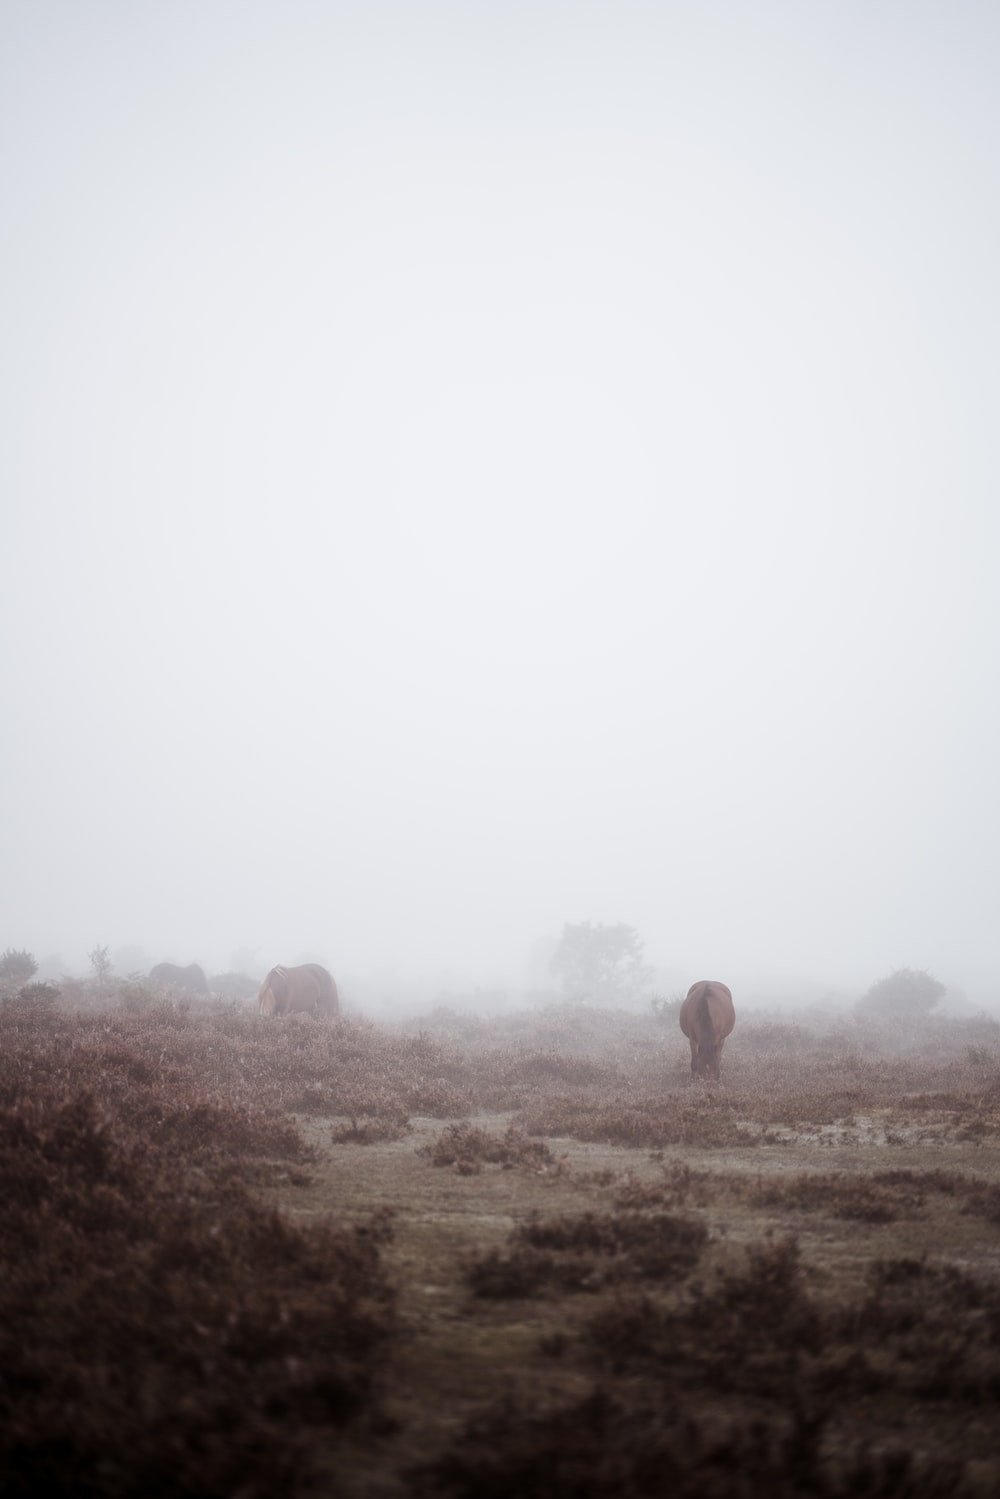 area covered in white fog]